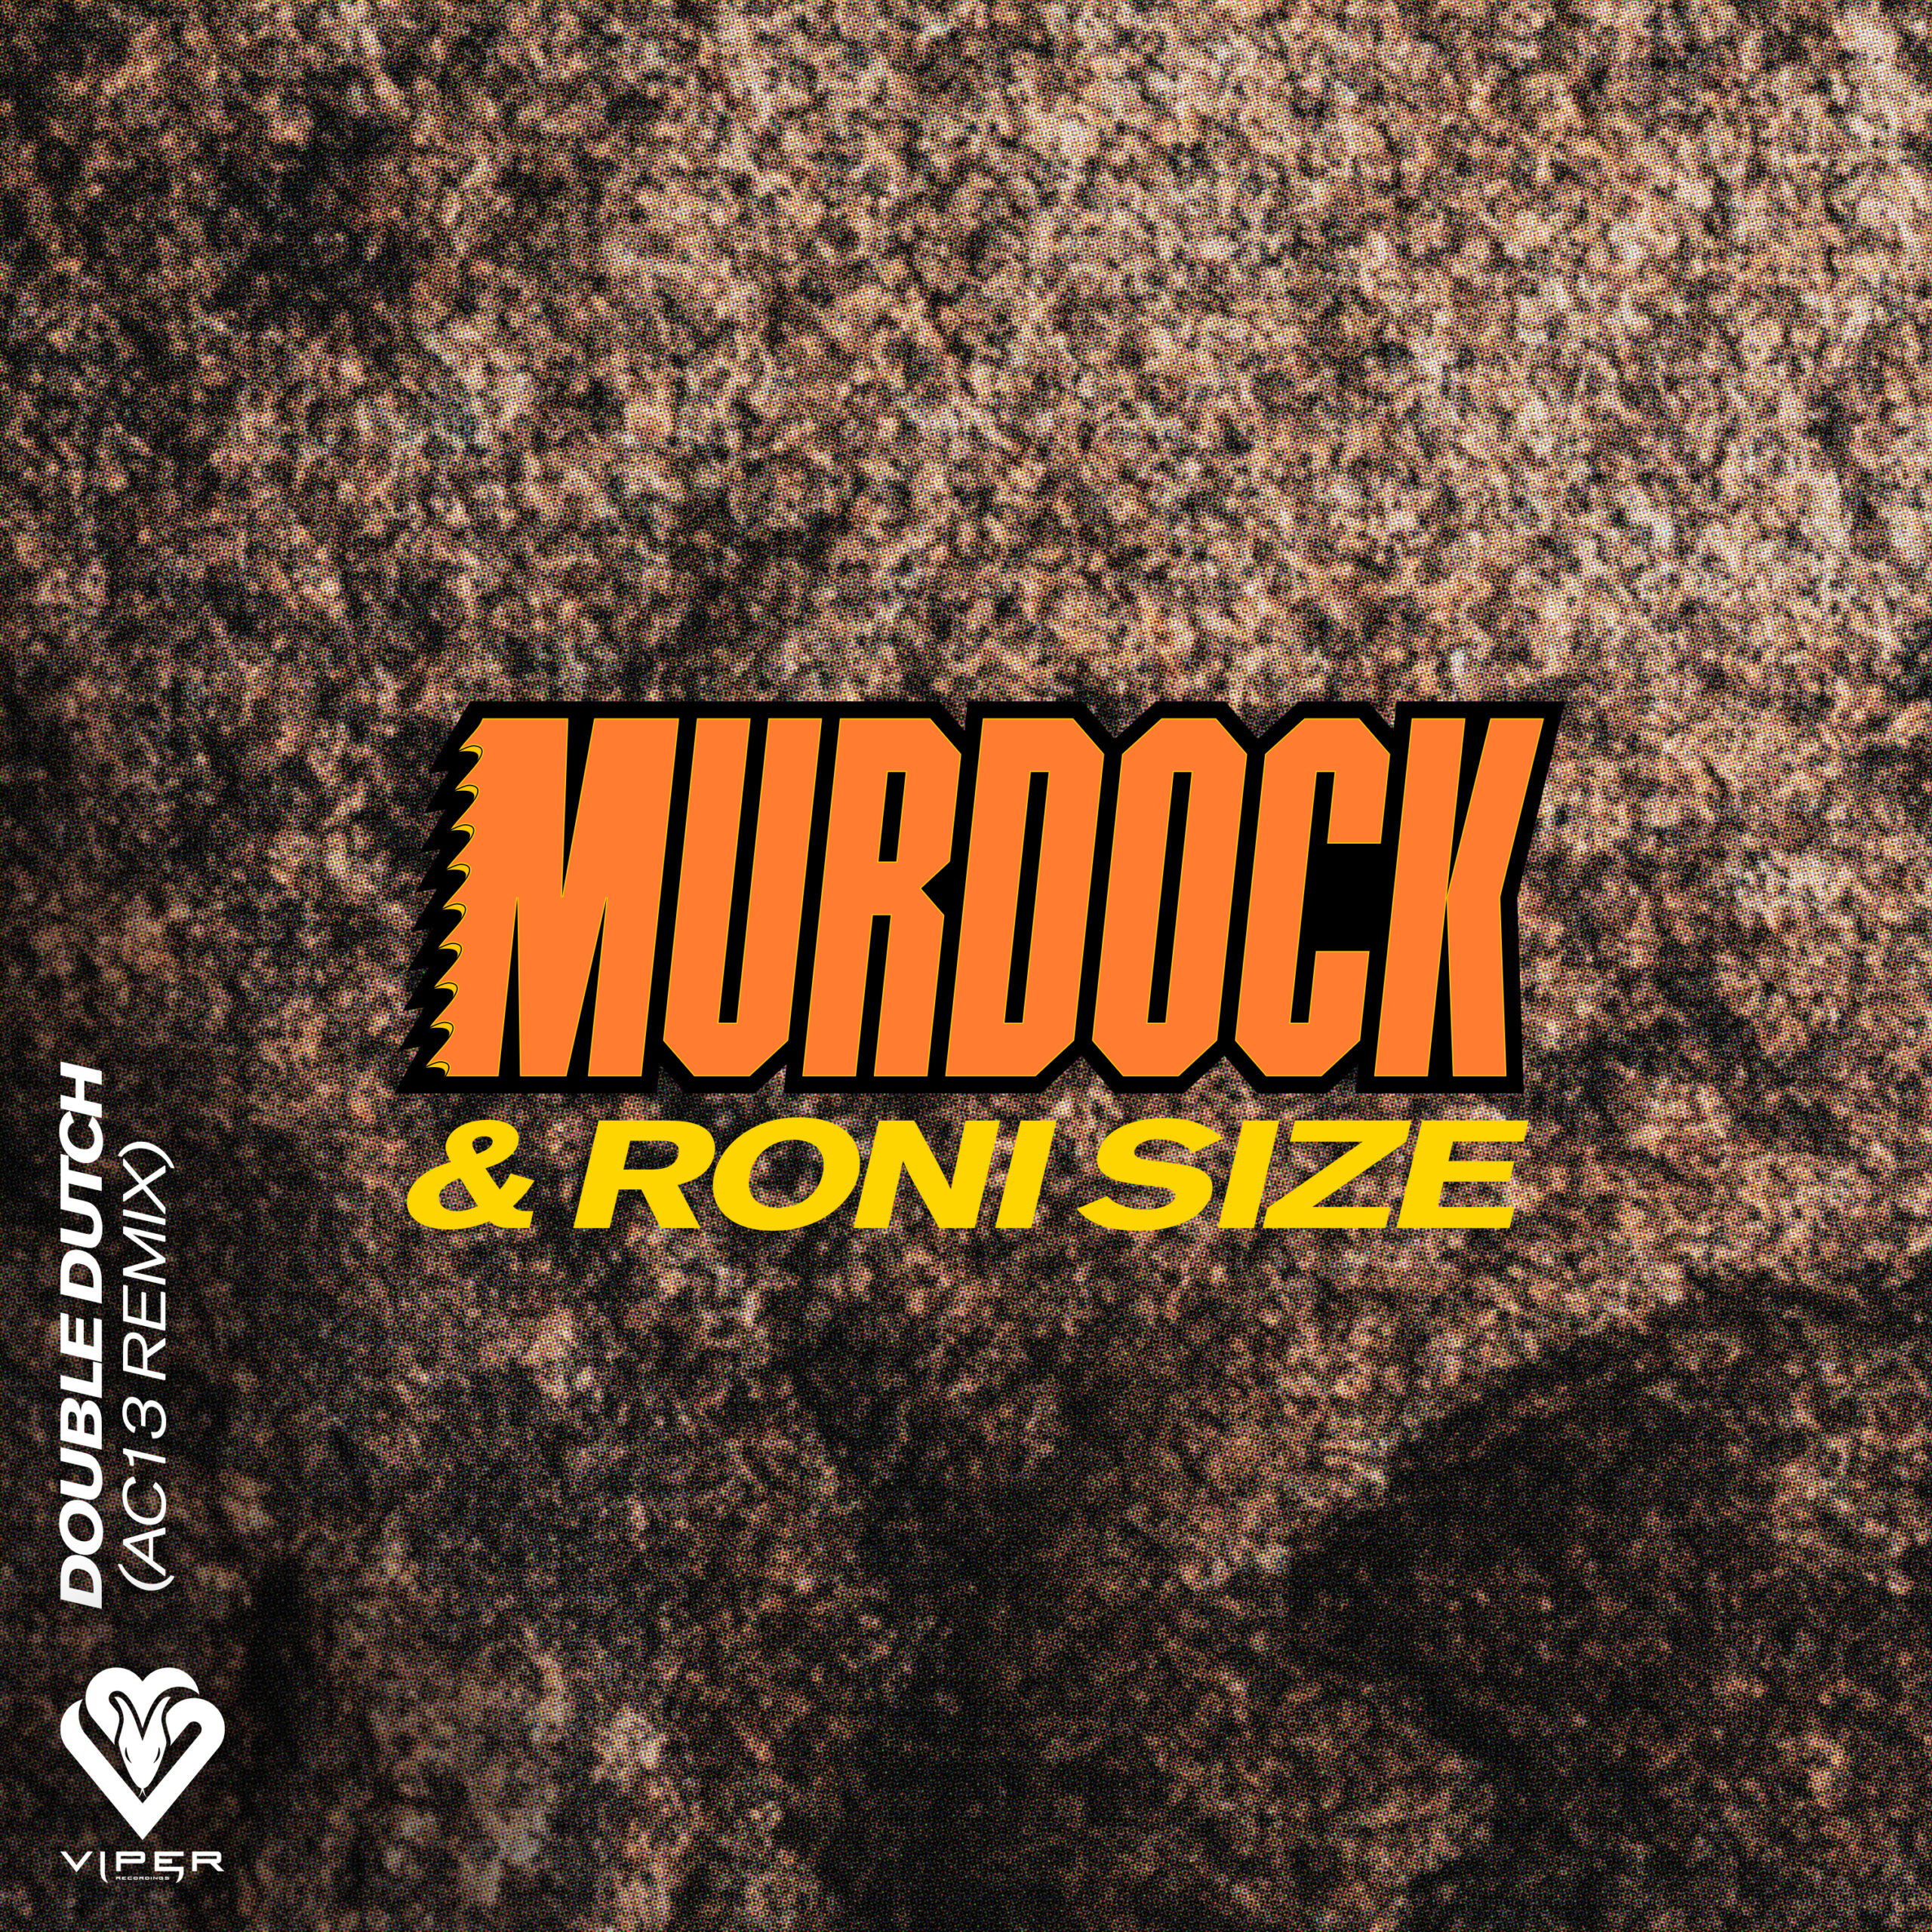 Murdock ft. Roni Size - Double Dutch (AC13 Remix) [VPR220]